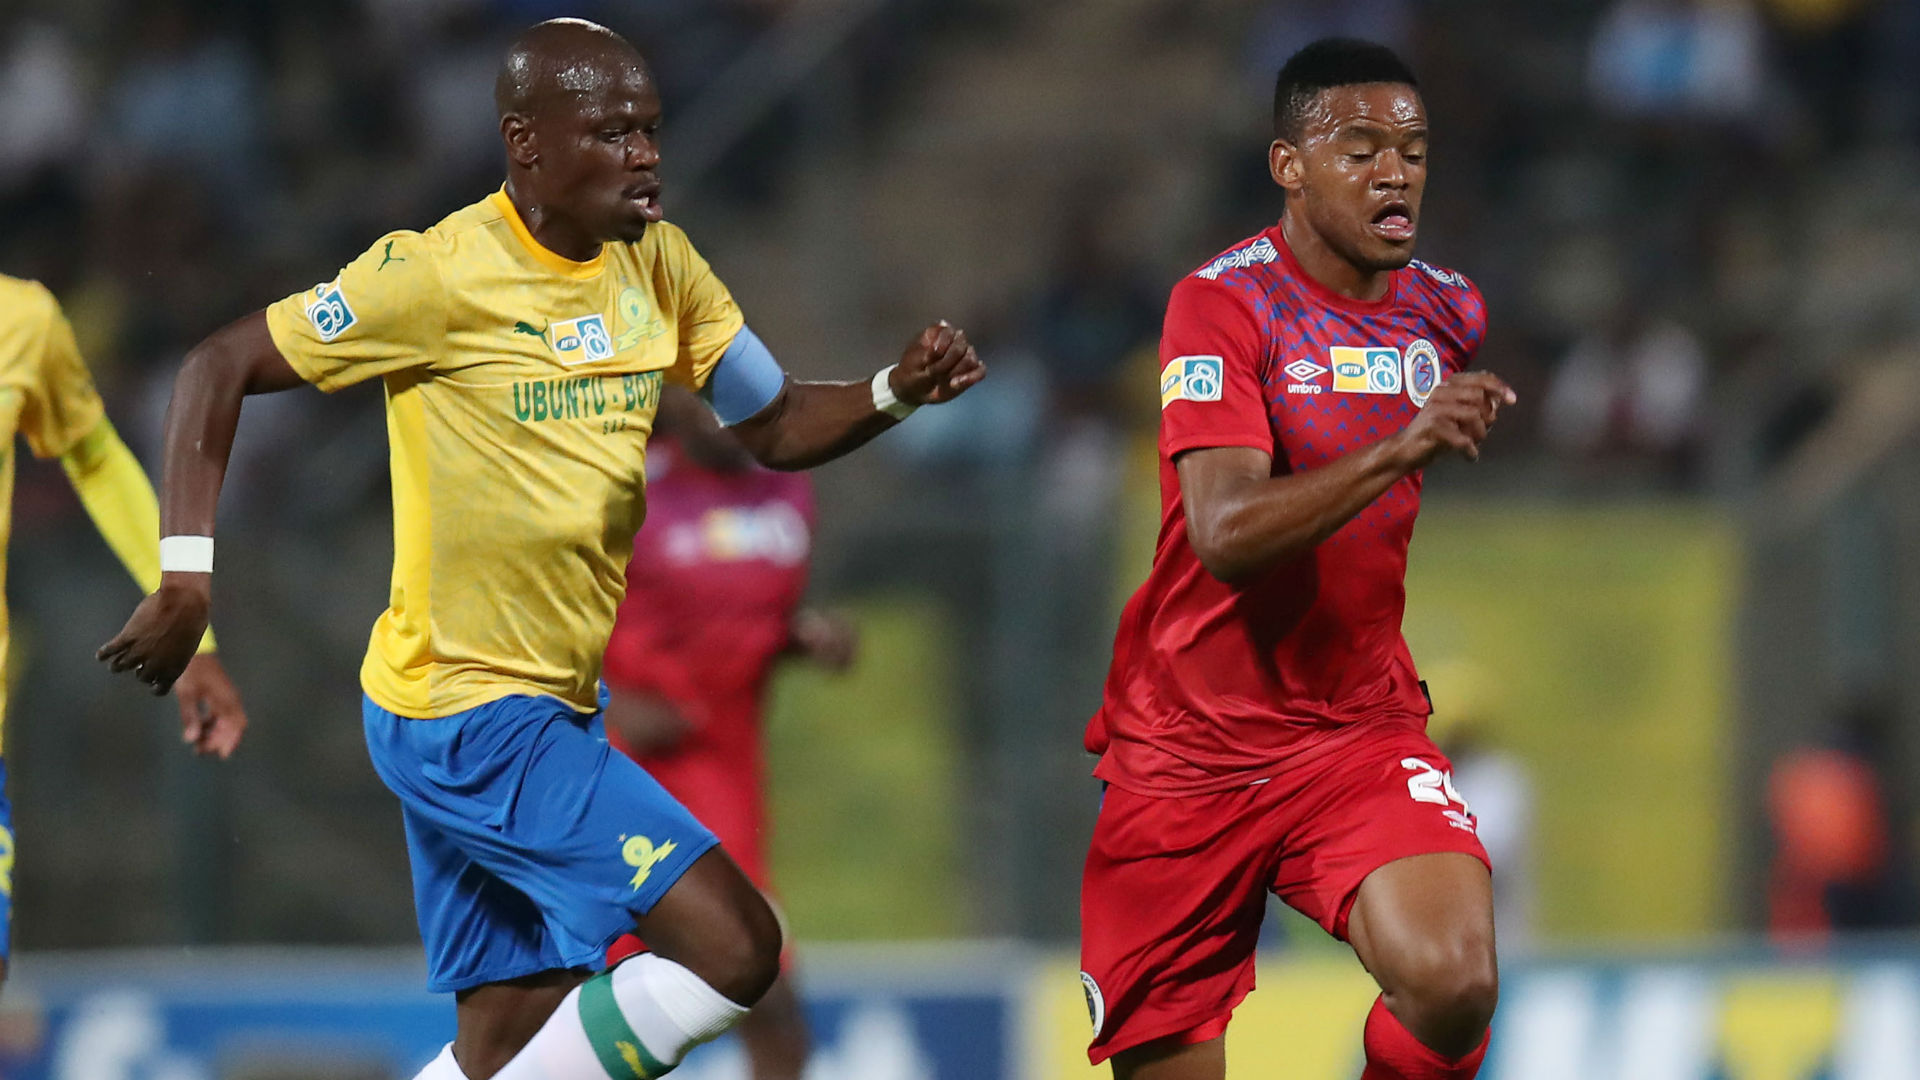 Rantie: Mamelodi Sundowns don't sign players for the sake of signing – Feutmba